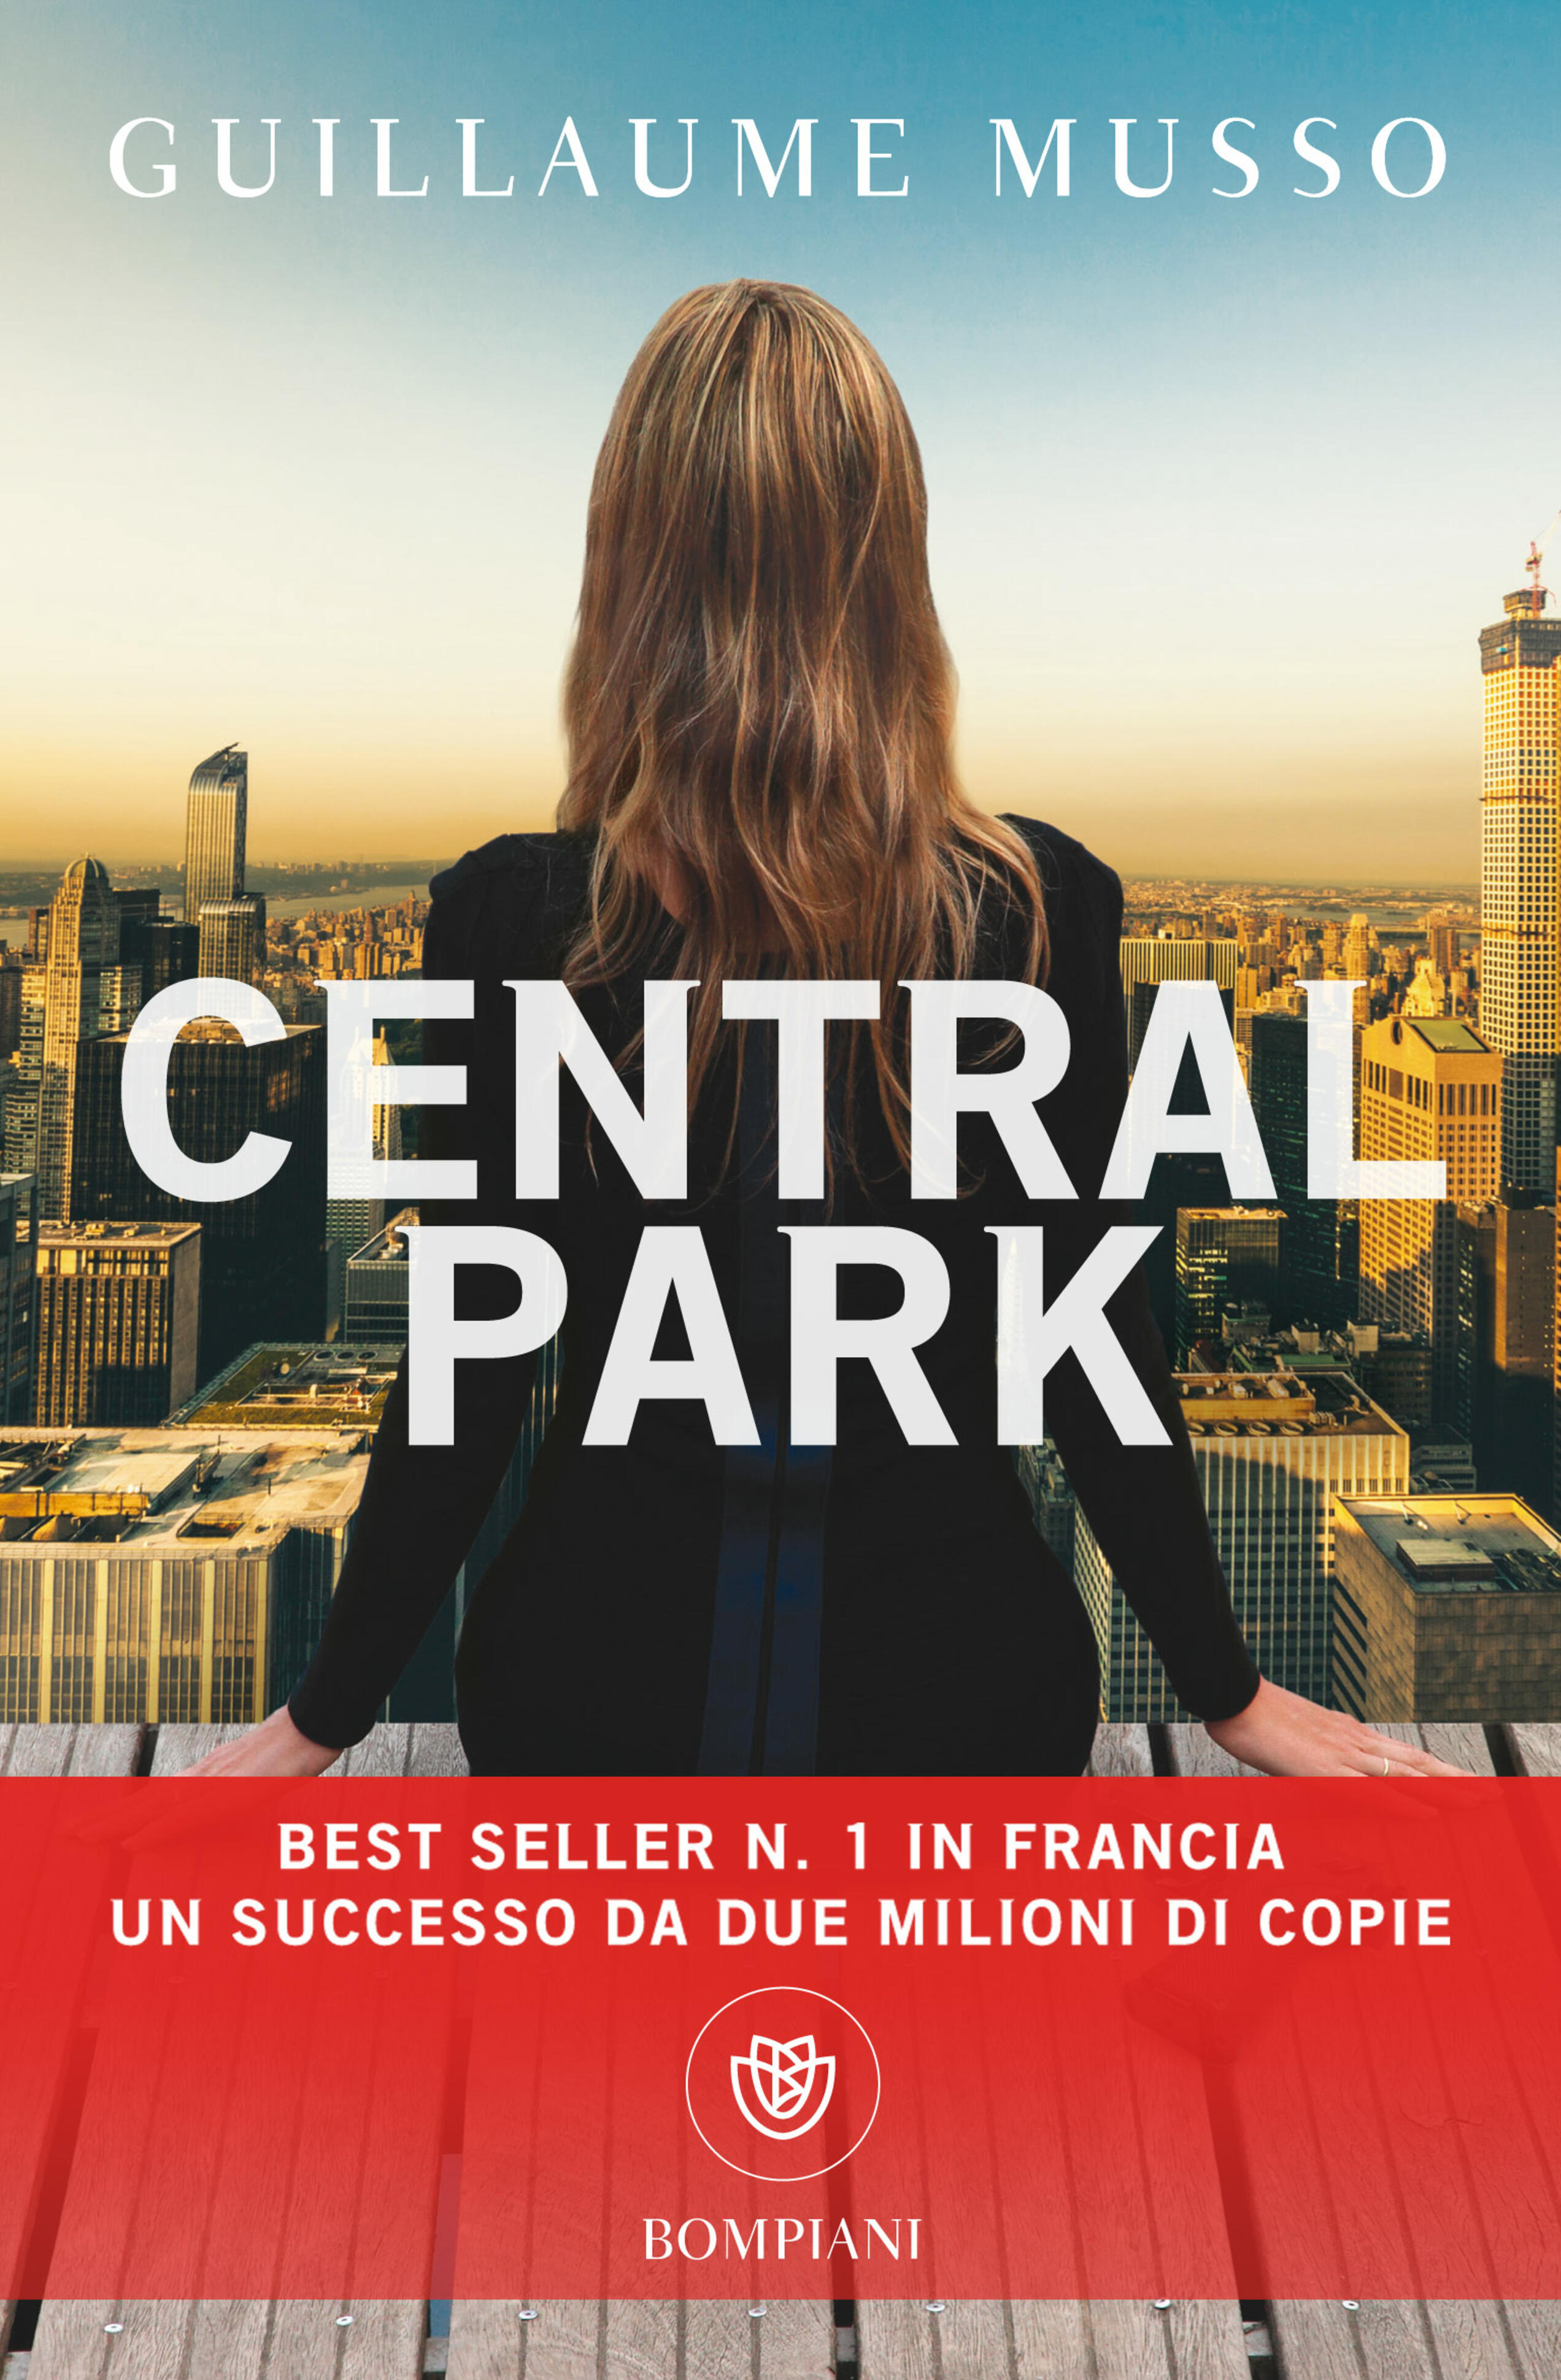 Central park musso guillaume ebook epub con drm ibs fandeluxe Choice Image